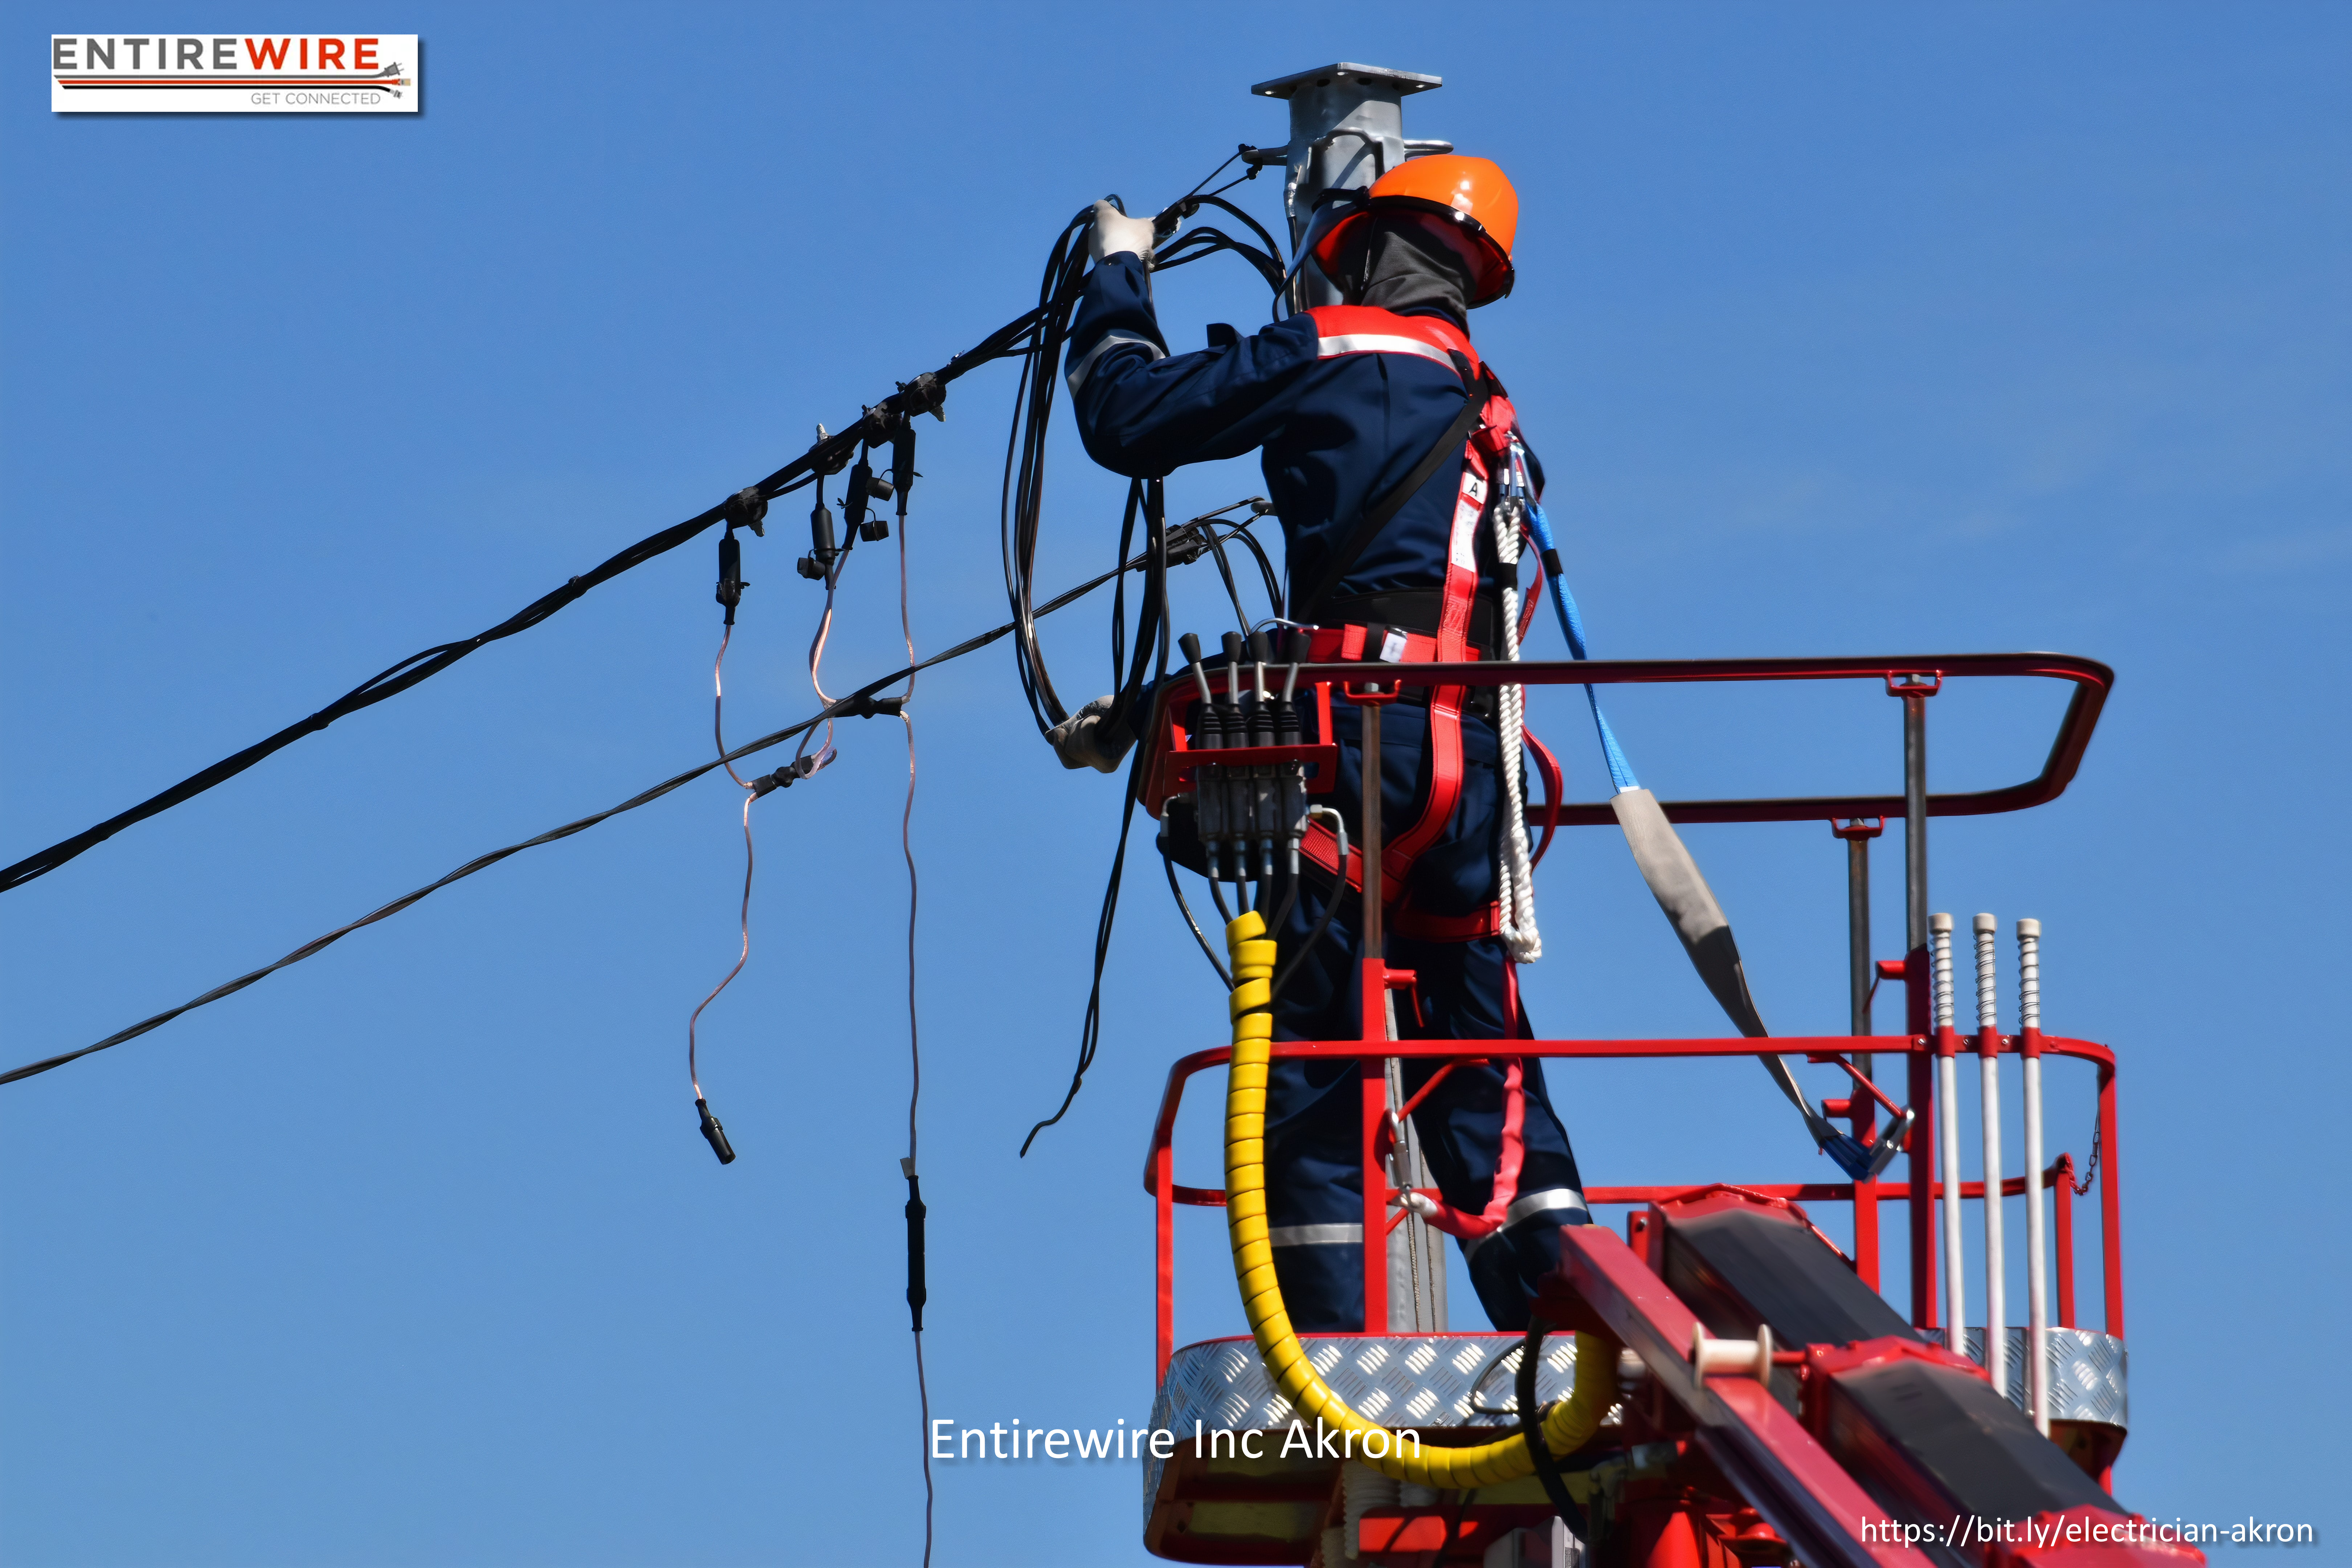 Entirewire Inc Akron Outlines the Benefits of Hiring Professional Electricians